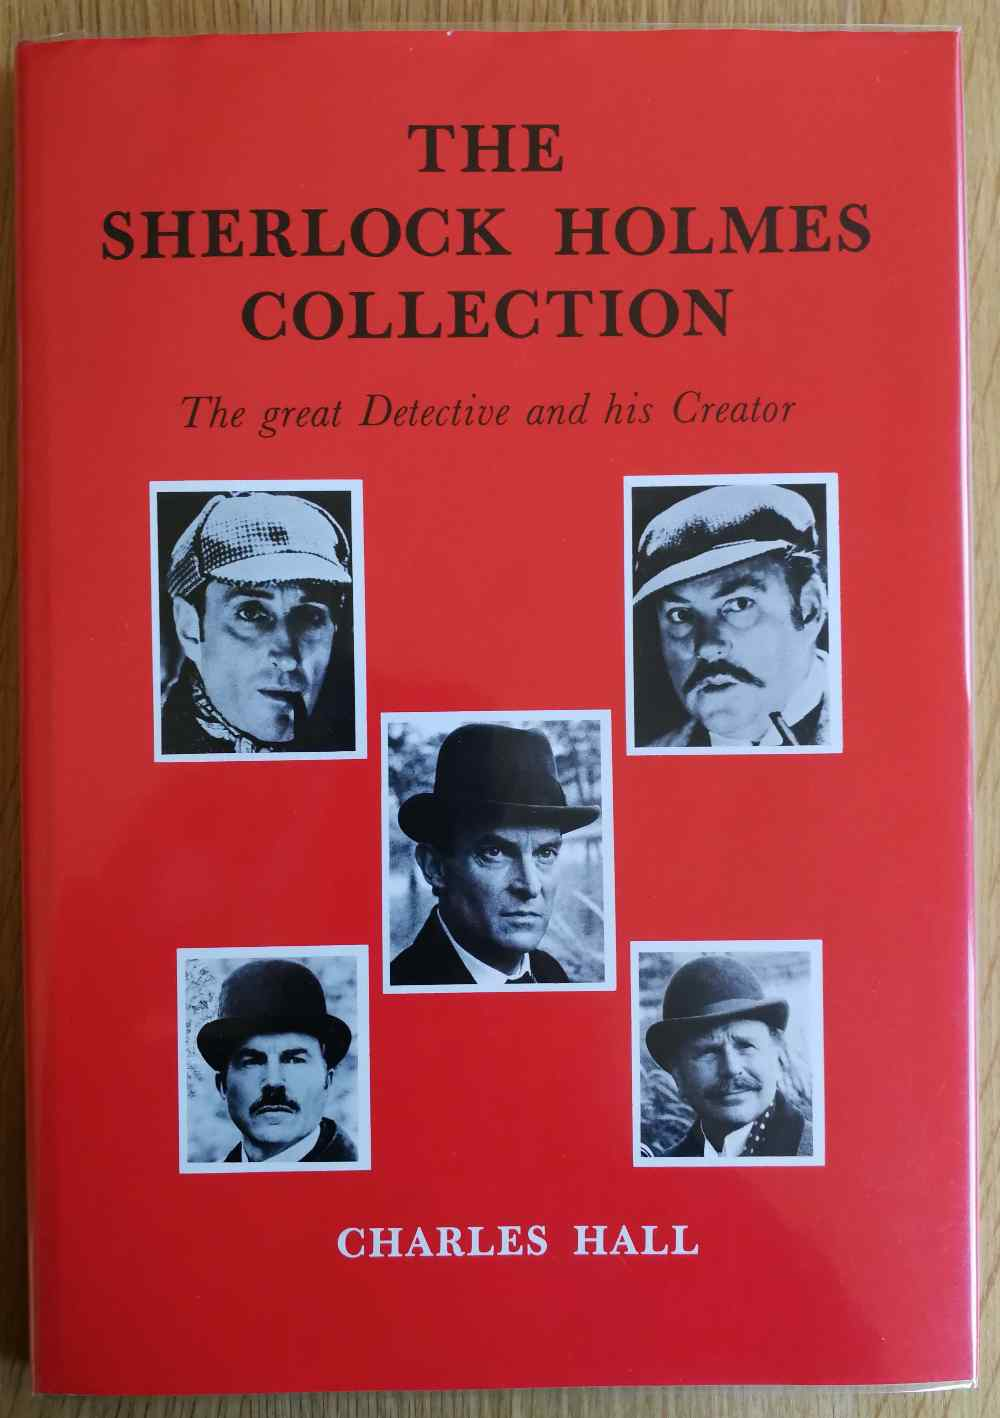 The Sherlock Holmes collection : the great detective and his creator